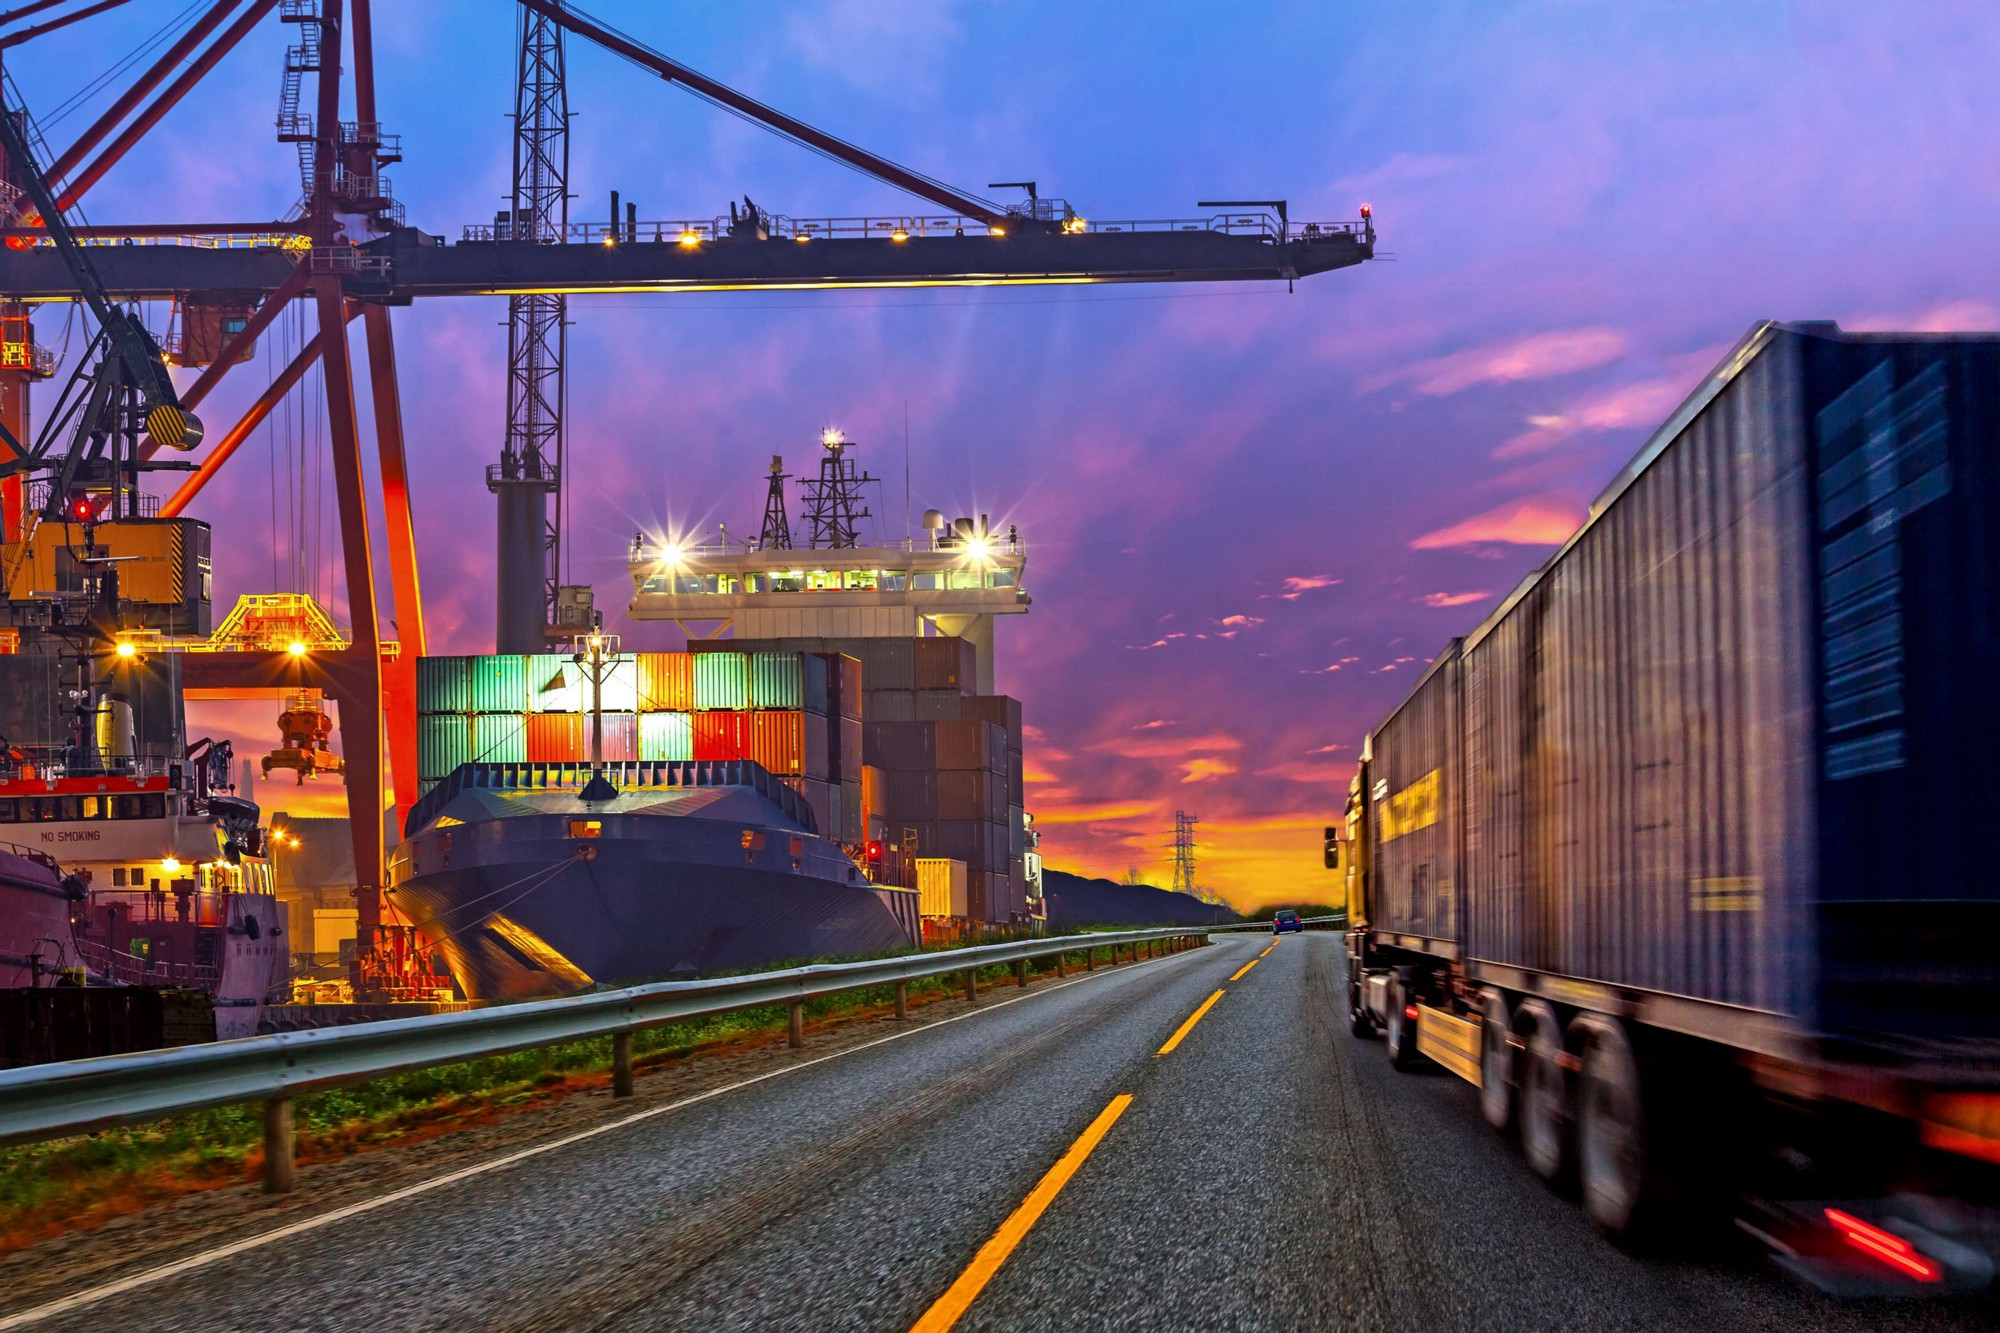 In the Era of Millennials, Logistics Services Need to Catch Up